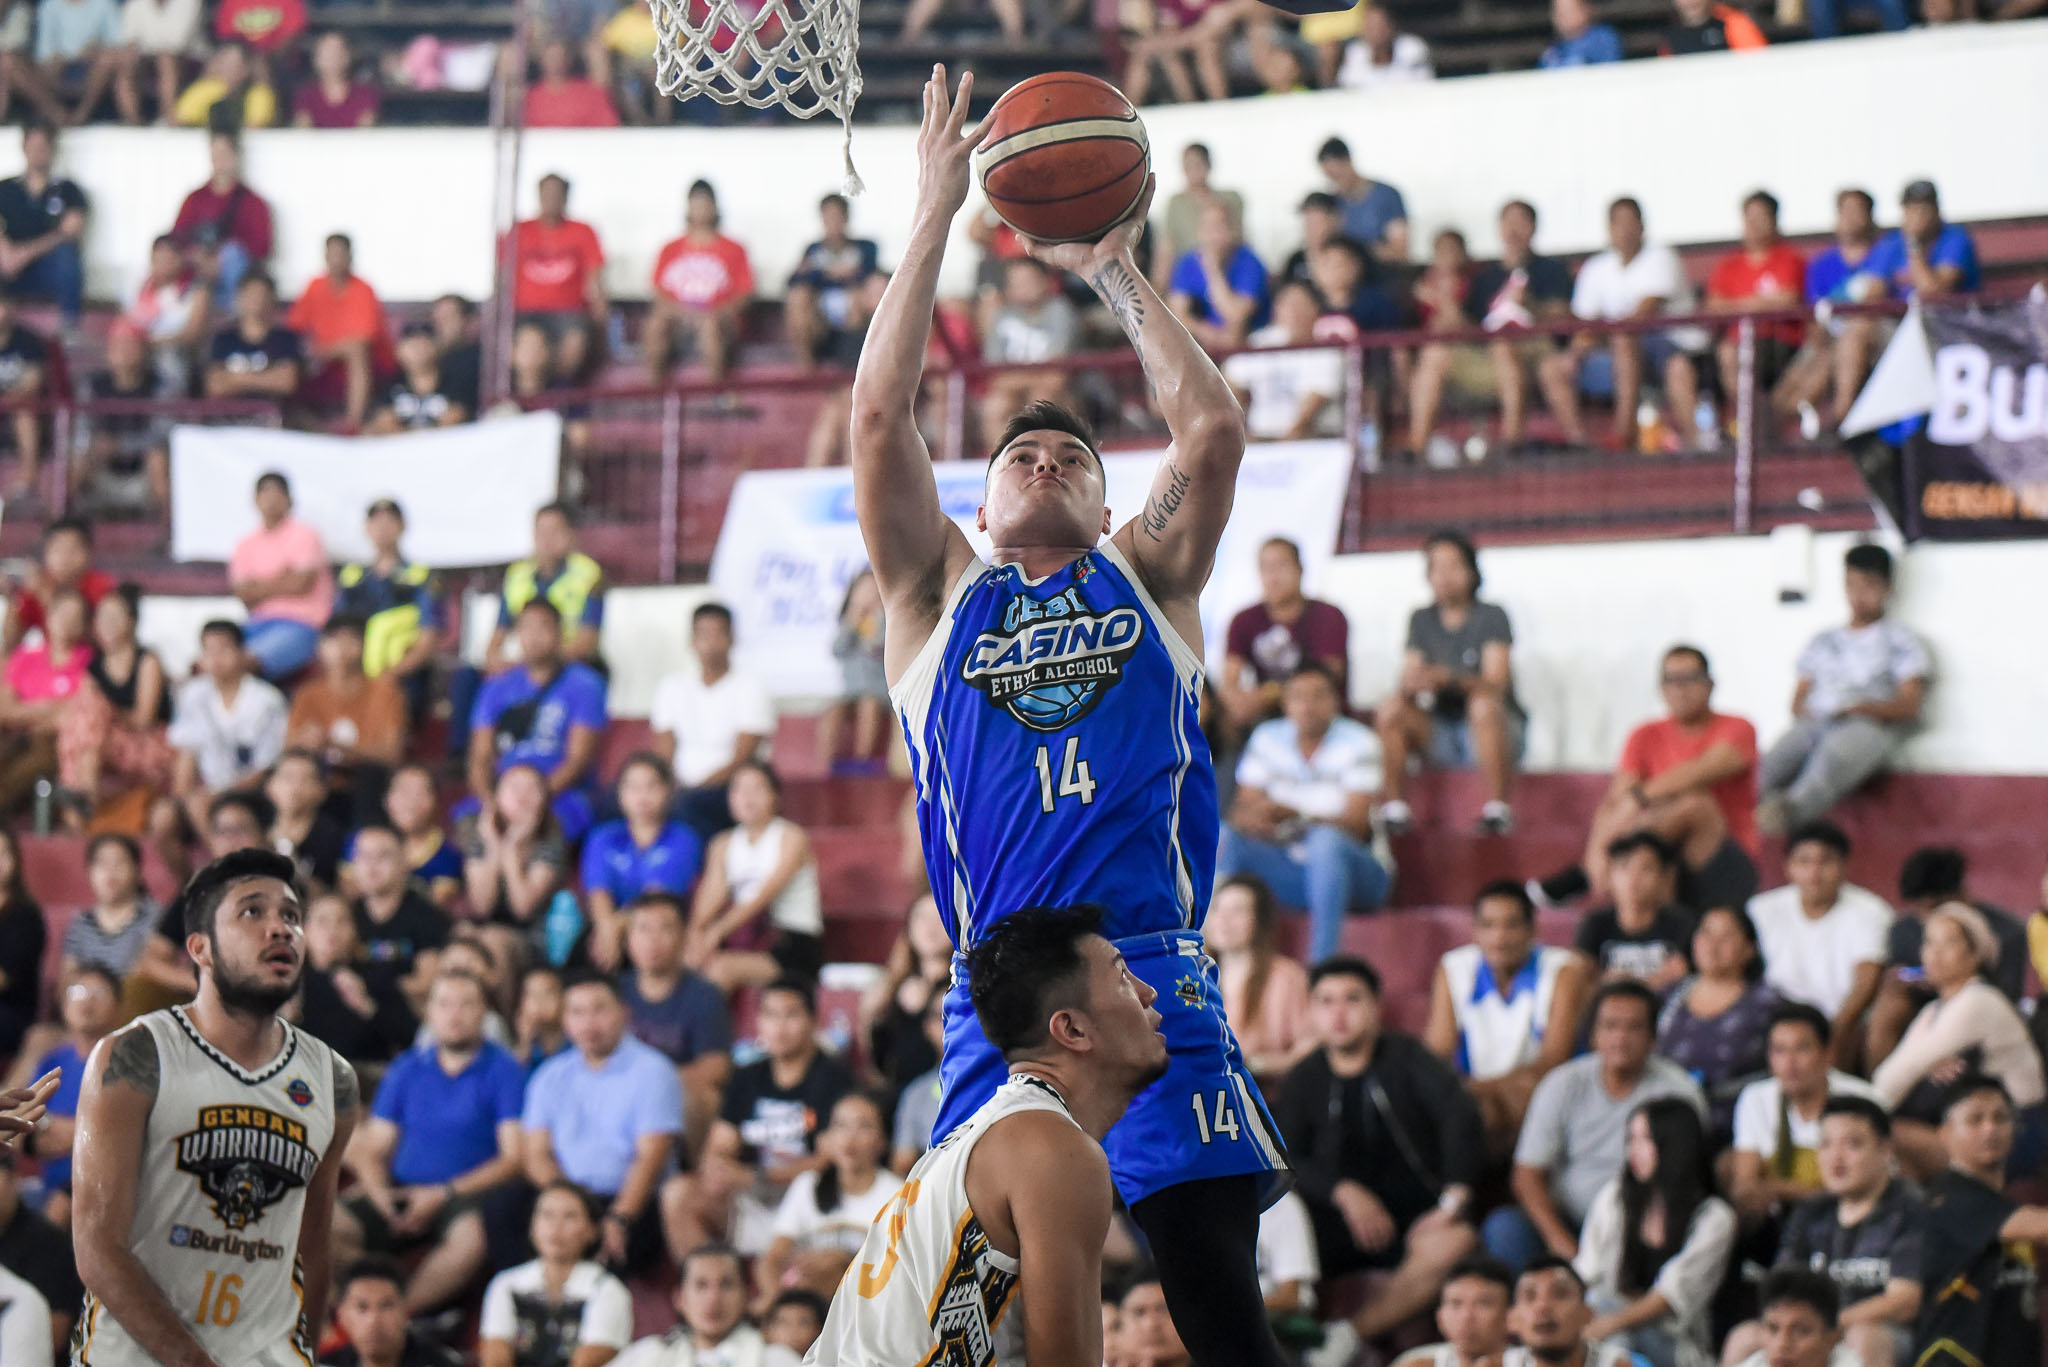 Tiebreaker Times Despite getting drafted in PBA, Will McAloney vows to lead Cebu to MPBL playoffs Basketball MPBL News  William McAloney Cebu Sharks 2019-20 MPBL Lakan Cup